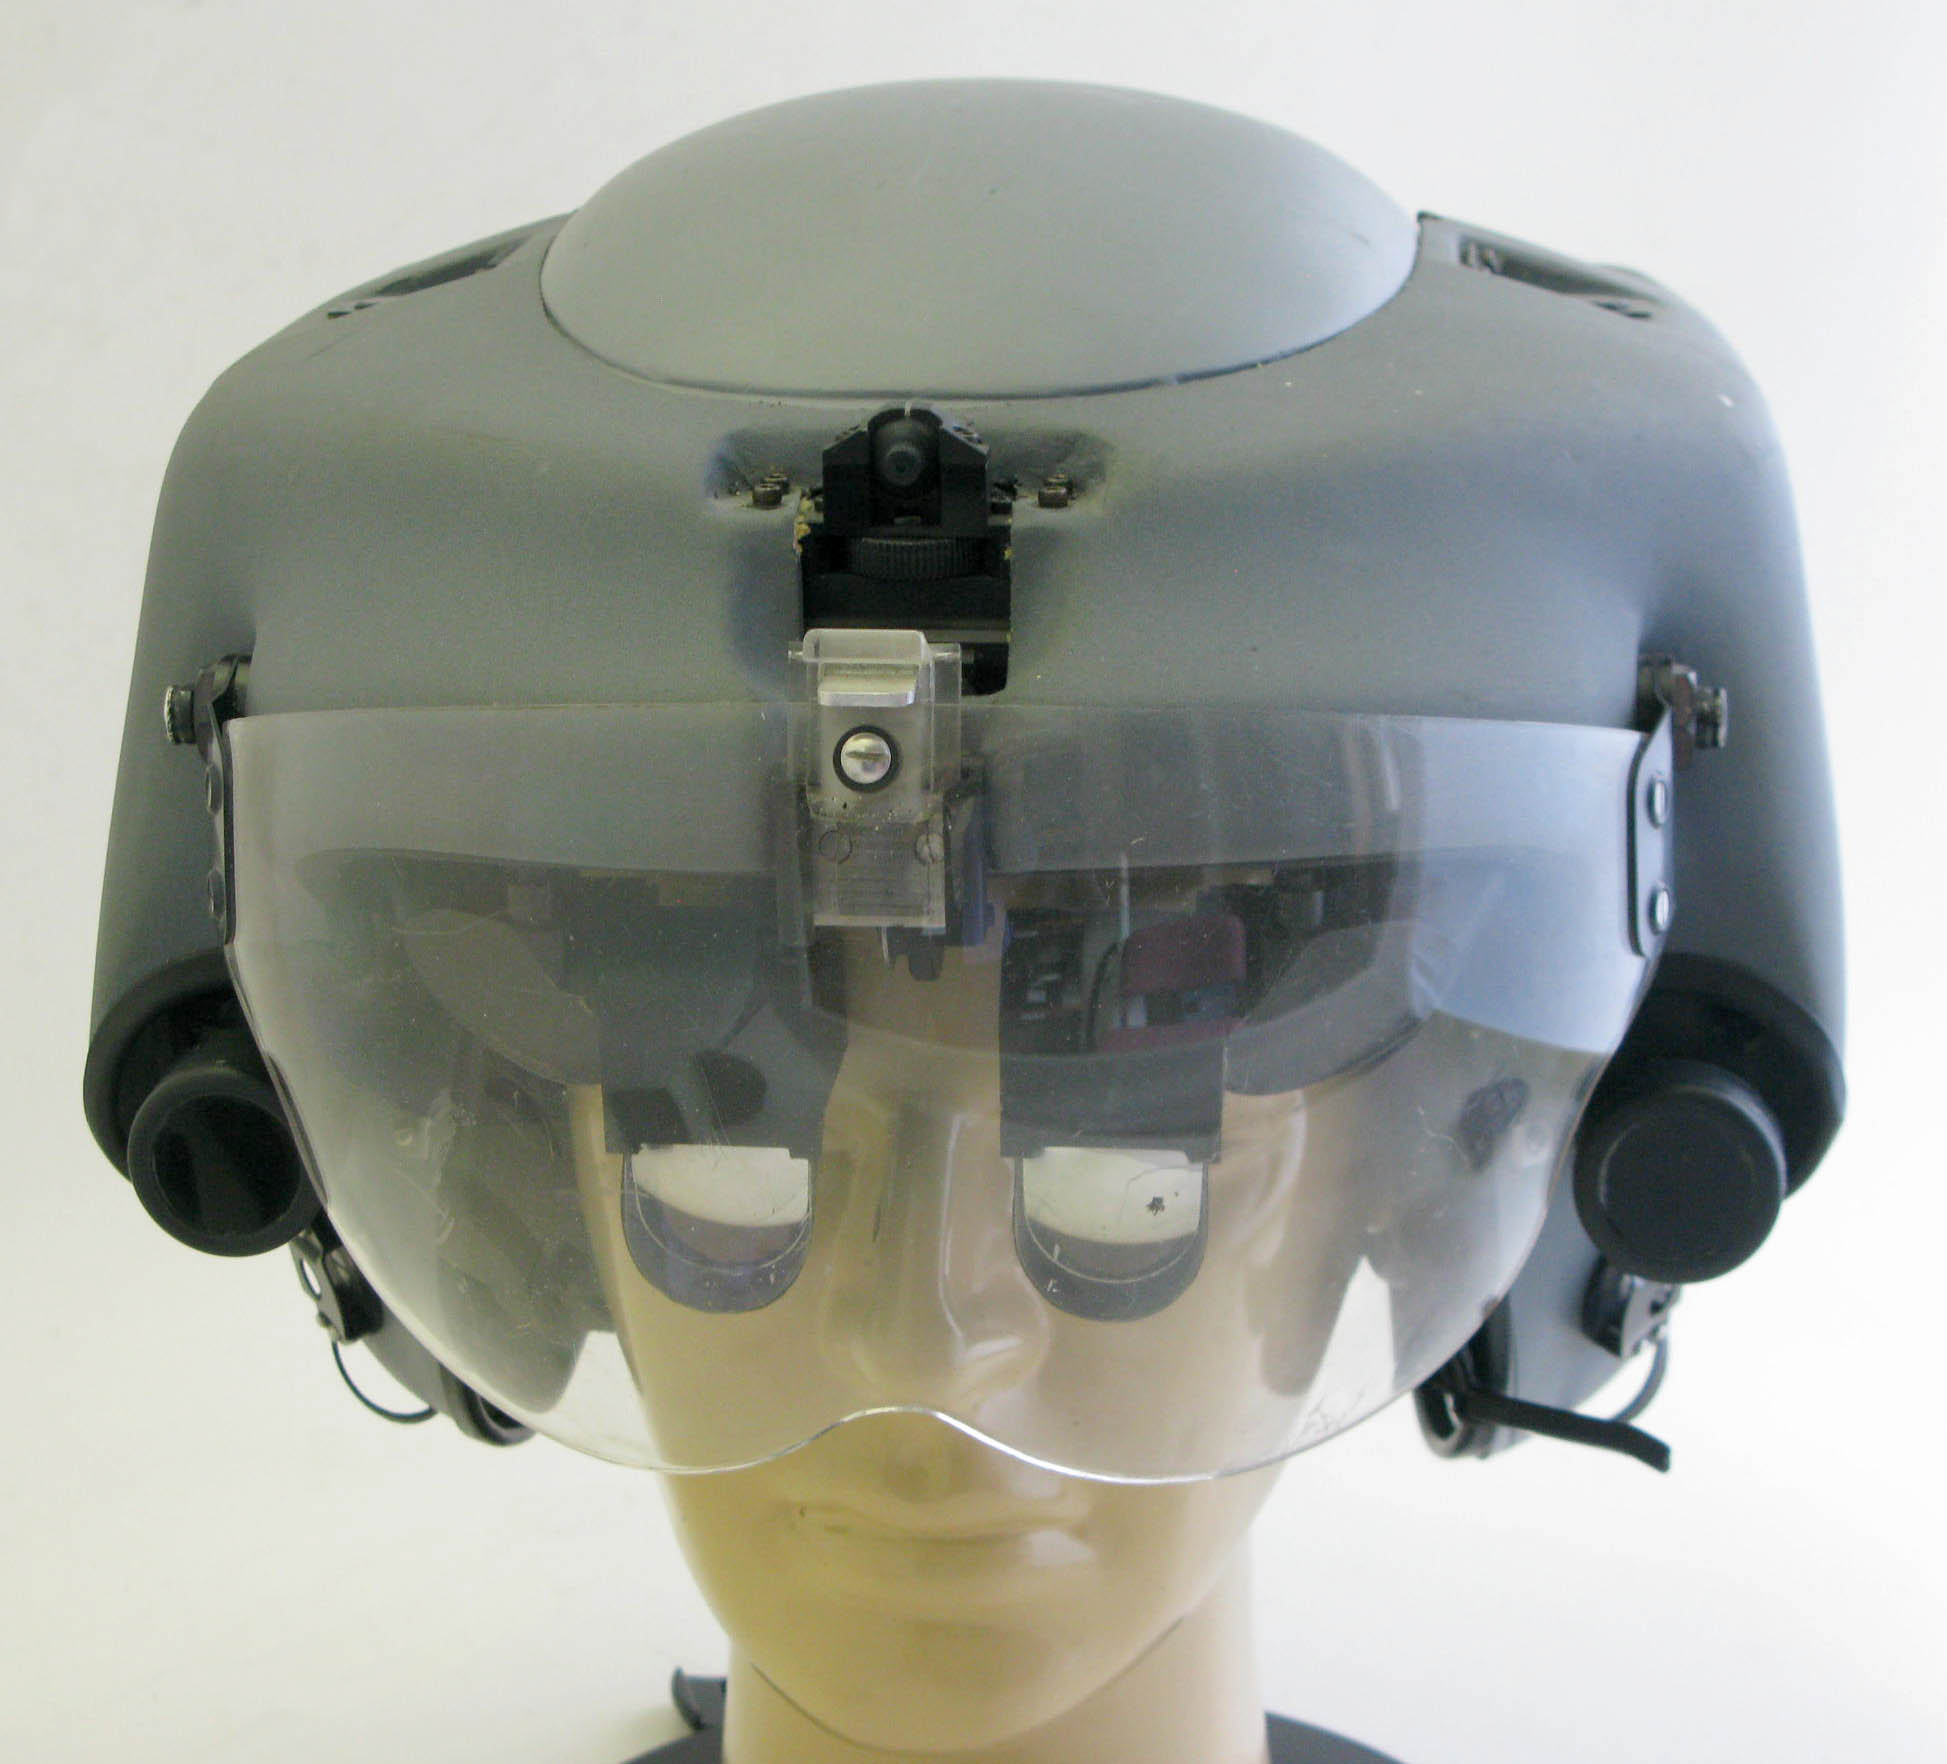 I-Nights Helmet Mounted Display